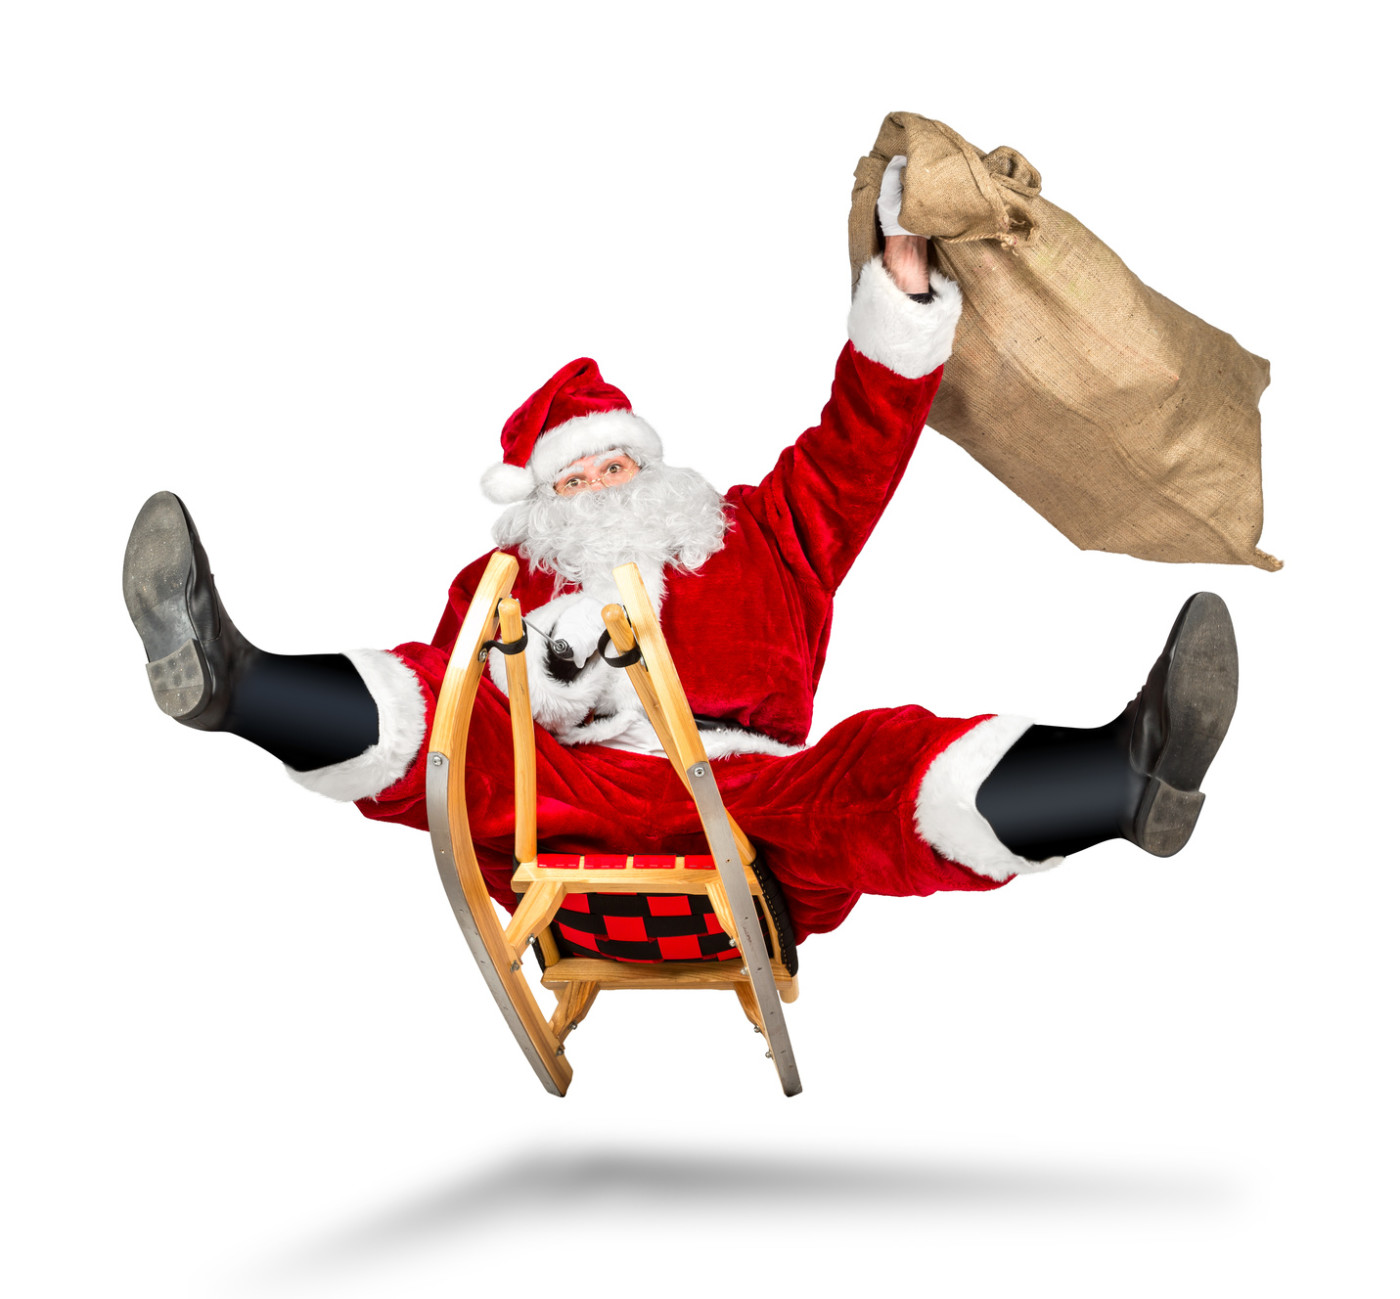 santa claus jumping on a sleigh crazy fast funny with his bag on christmas gift present delivery isolated / Weihnachtsmann rasant lustiug schnell auf Schlitten isoliert